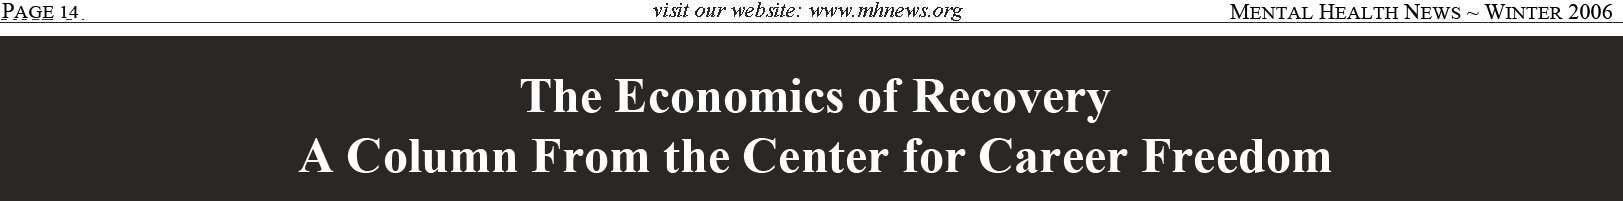 Fall 2006 The Economics of Recovery A Column From the Center for Career Freedom